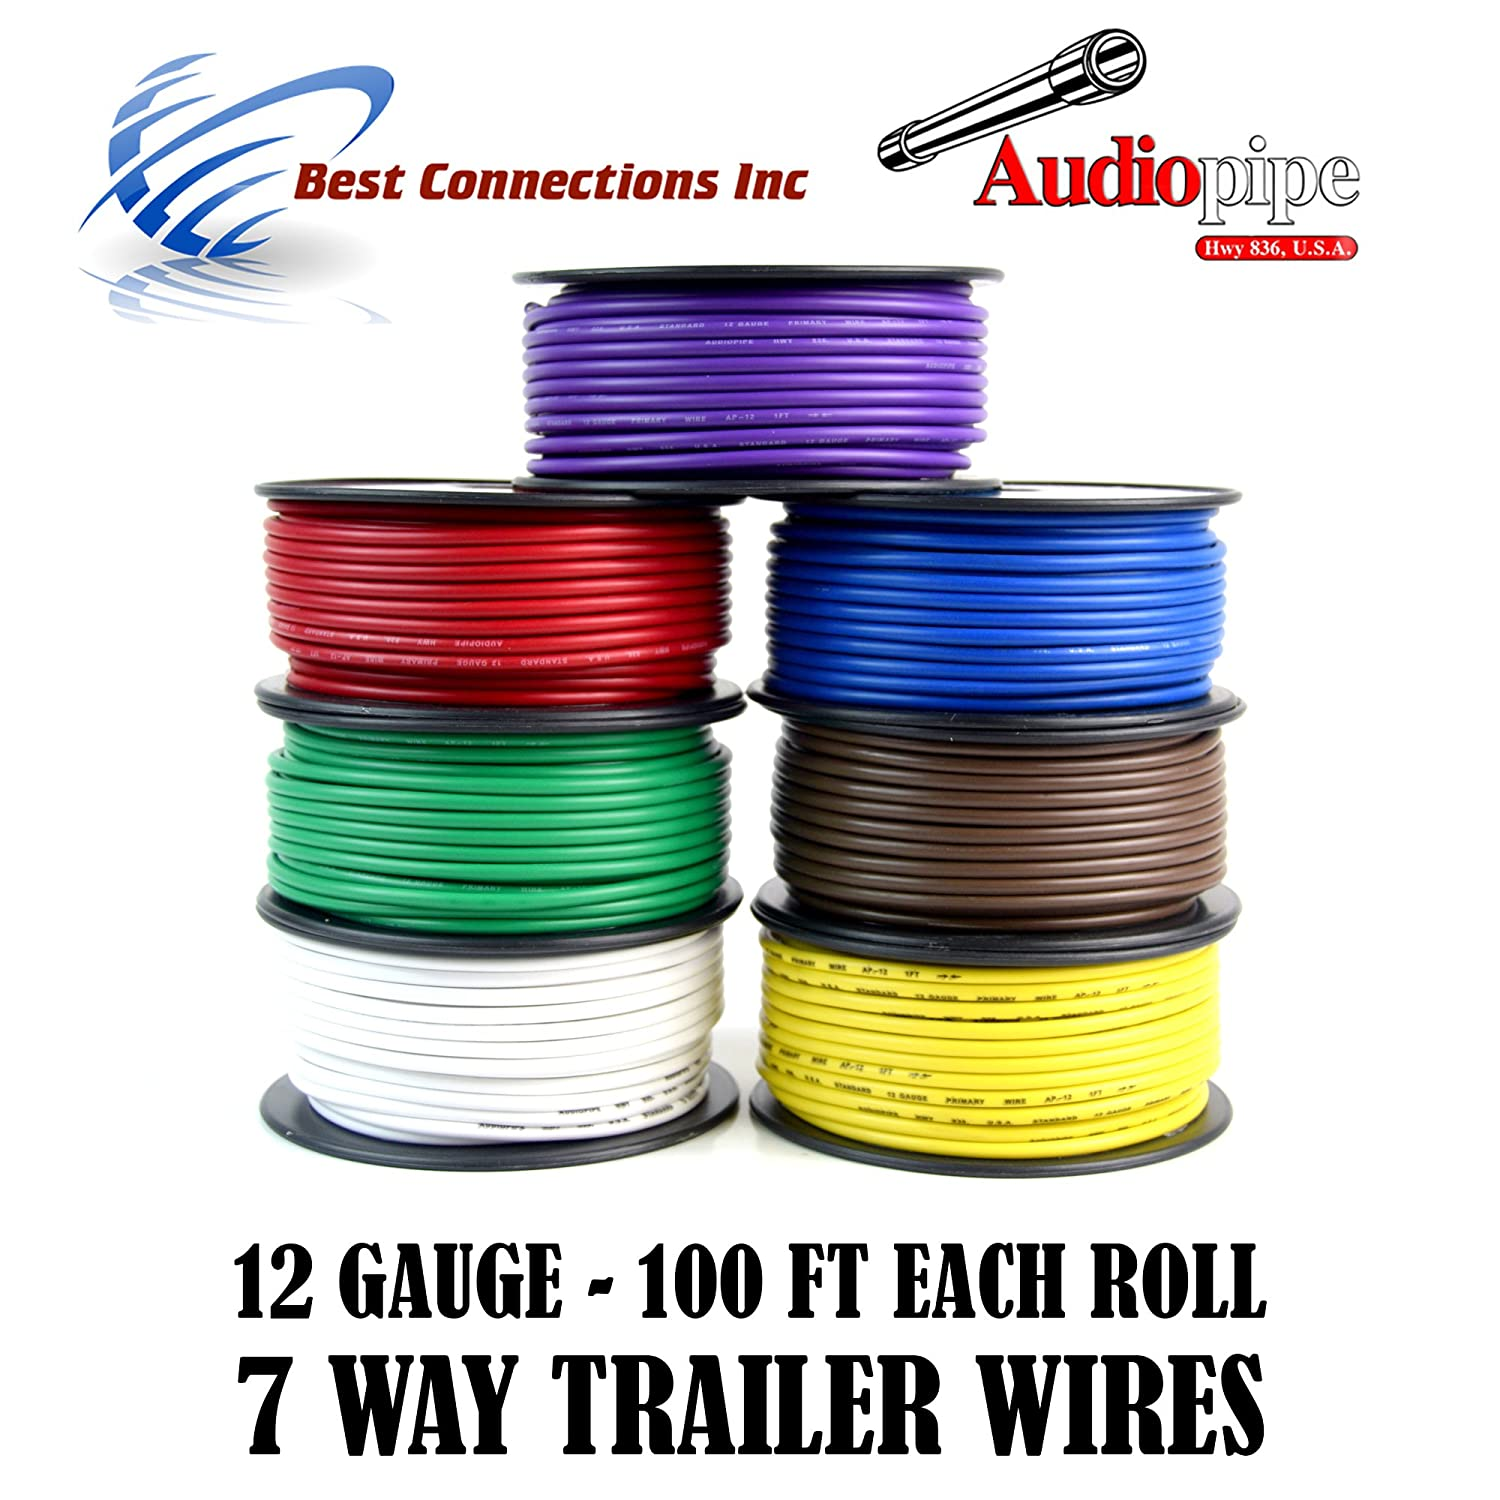 Trailer Wire Light Cable For Harness 7 Way Cord 12 Gauge Wiring 100ft Roll Rolls Automotive